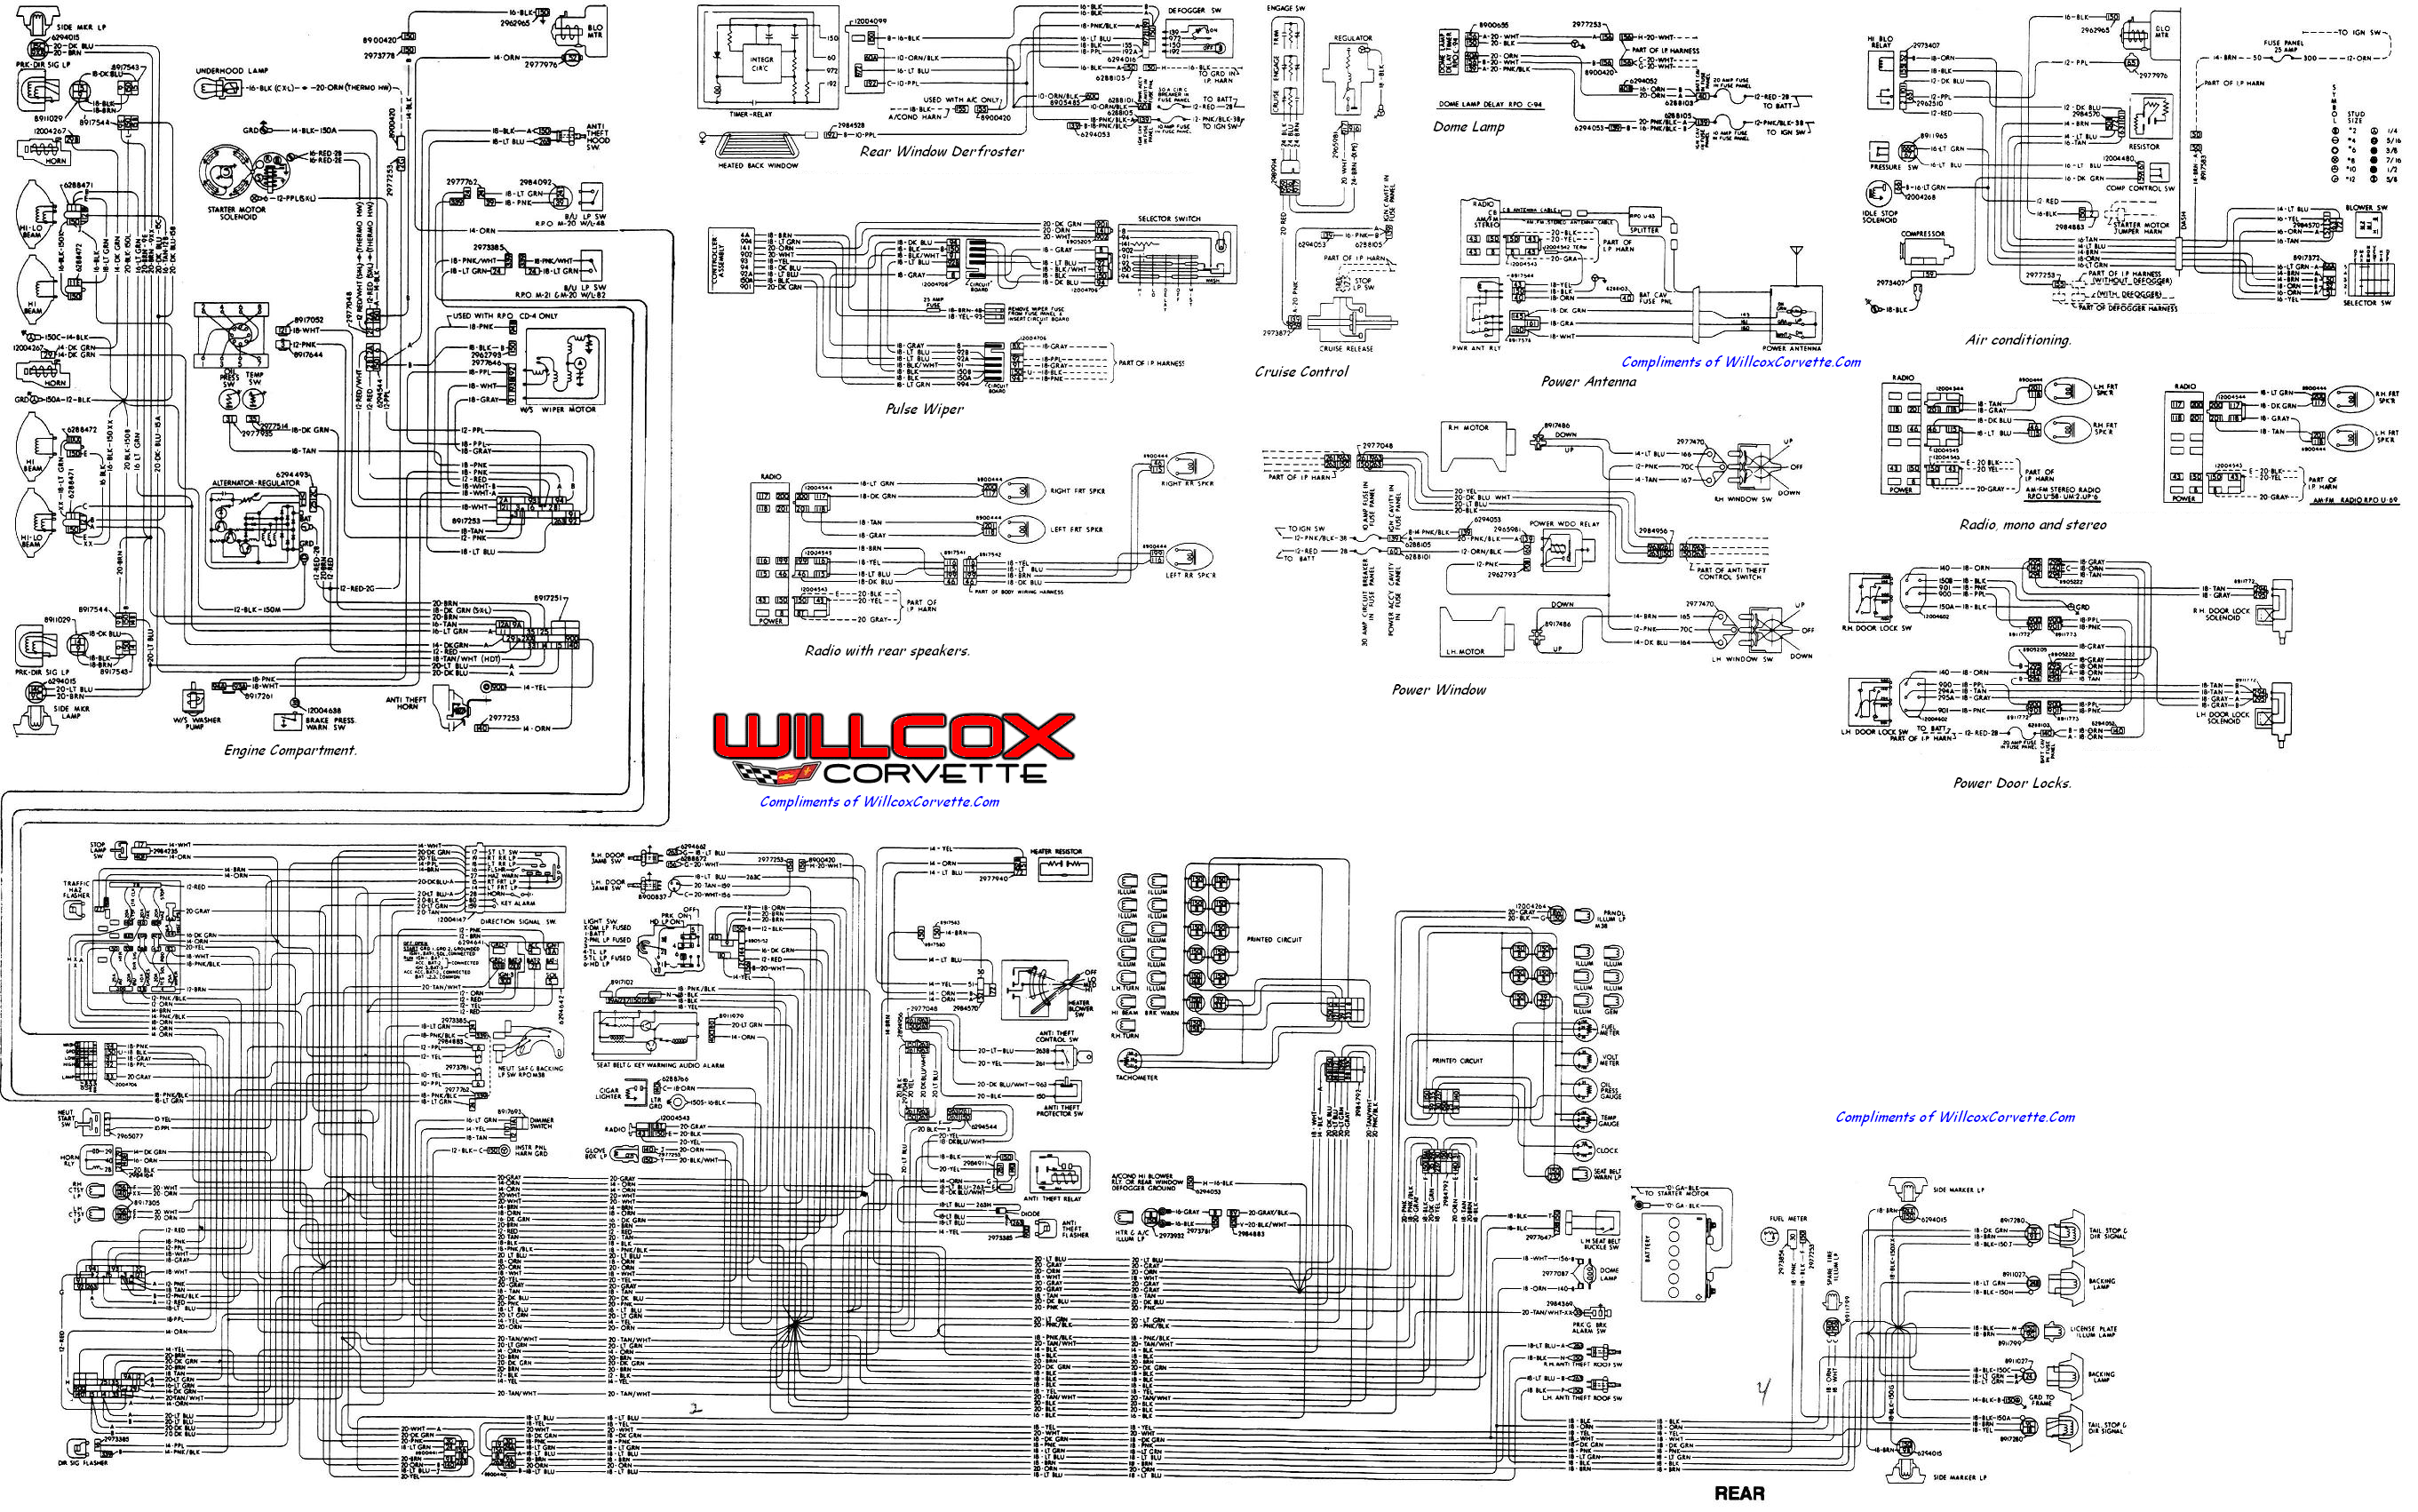 Trans Am Fuse Box | Wiring Diagram Automotive on 92 s10 engine, 92 explorer engine, 92 mustang engine, 92 tacoma engine, 92 camaro engine, 92 town car engine, 92 sierra engine, 92 maxima engine, 92 accord engine, 92 corolla engine, 92 pathfinder engine, 92 4runner engine, 92 silverado engine, 92 corvette engine,